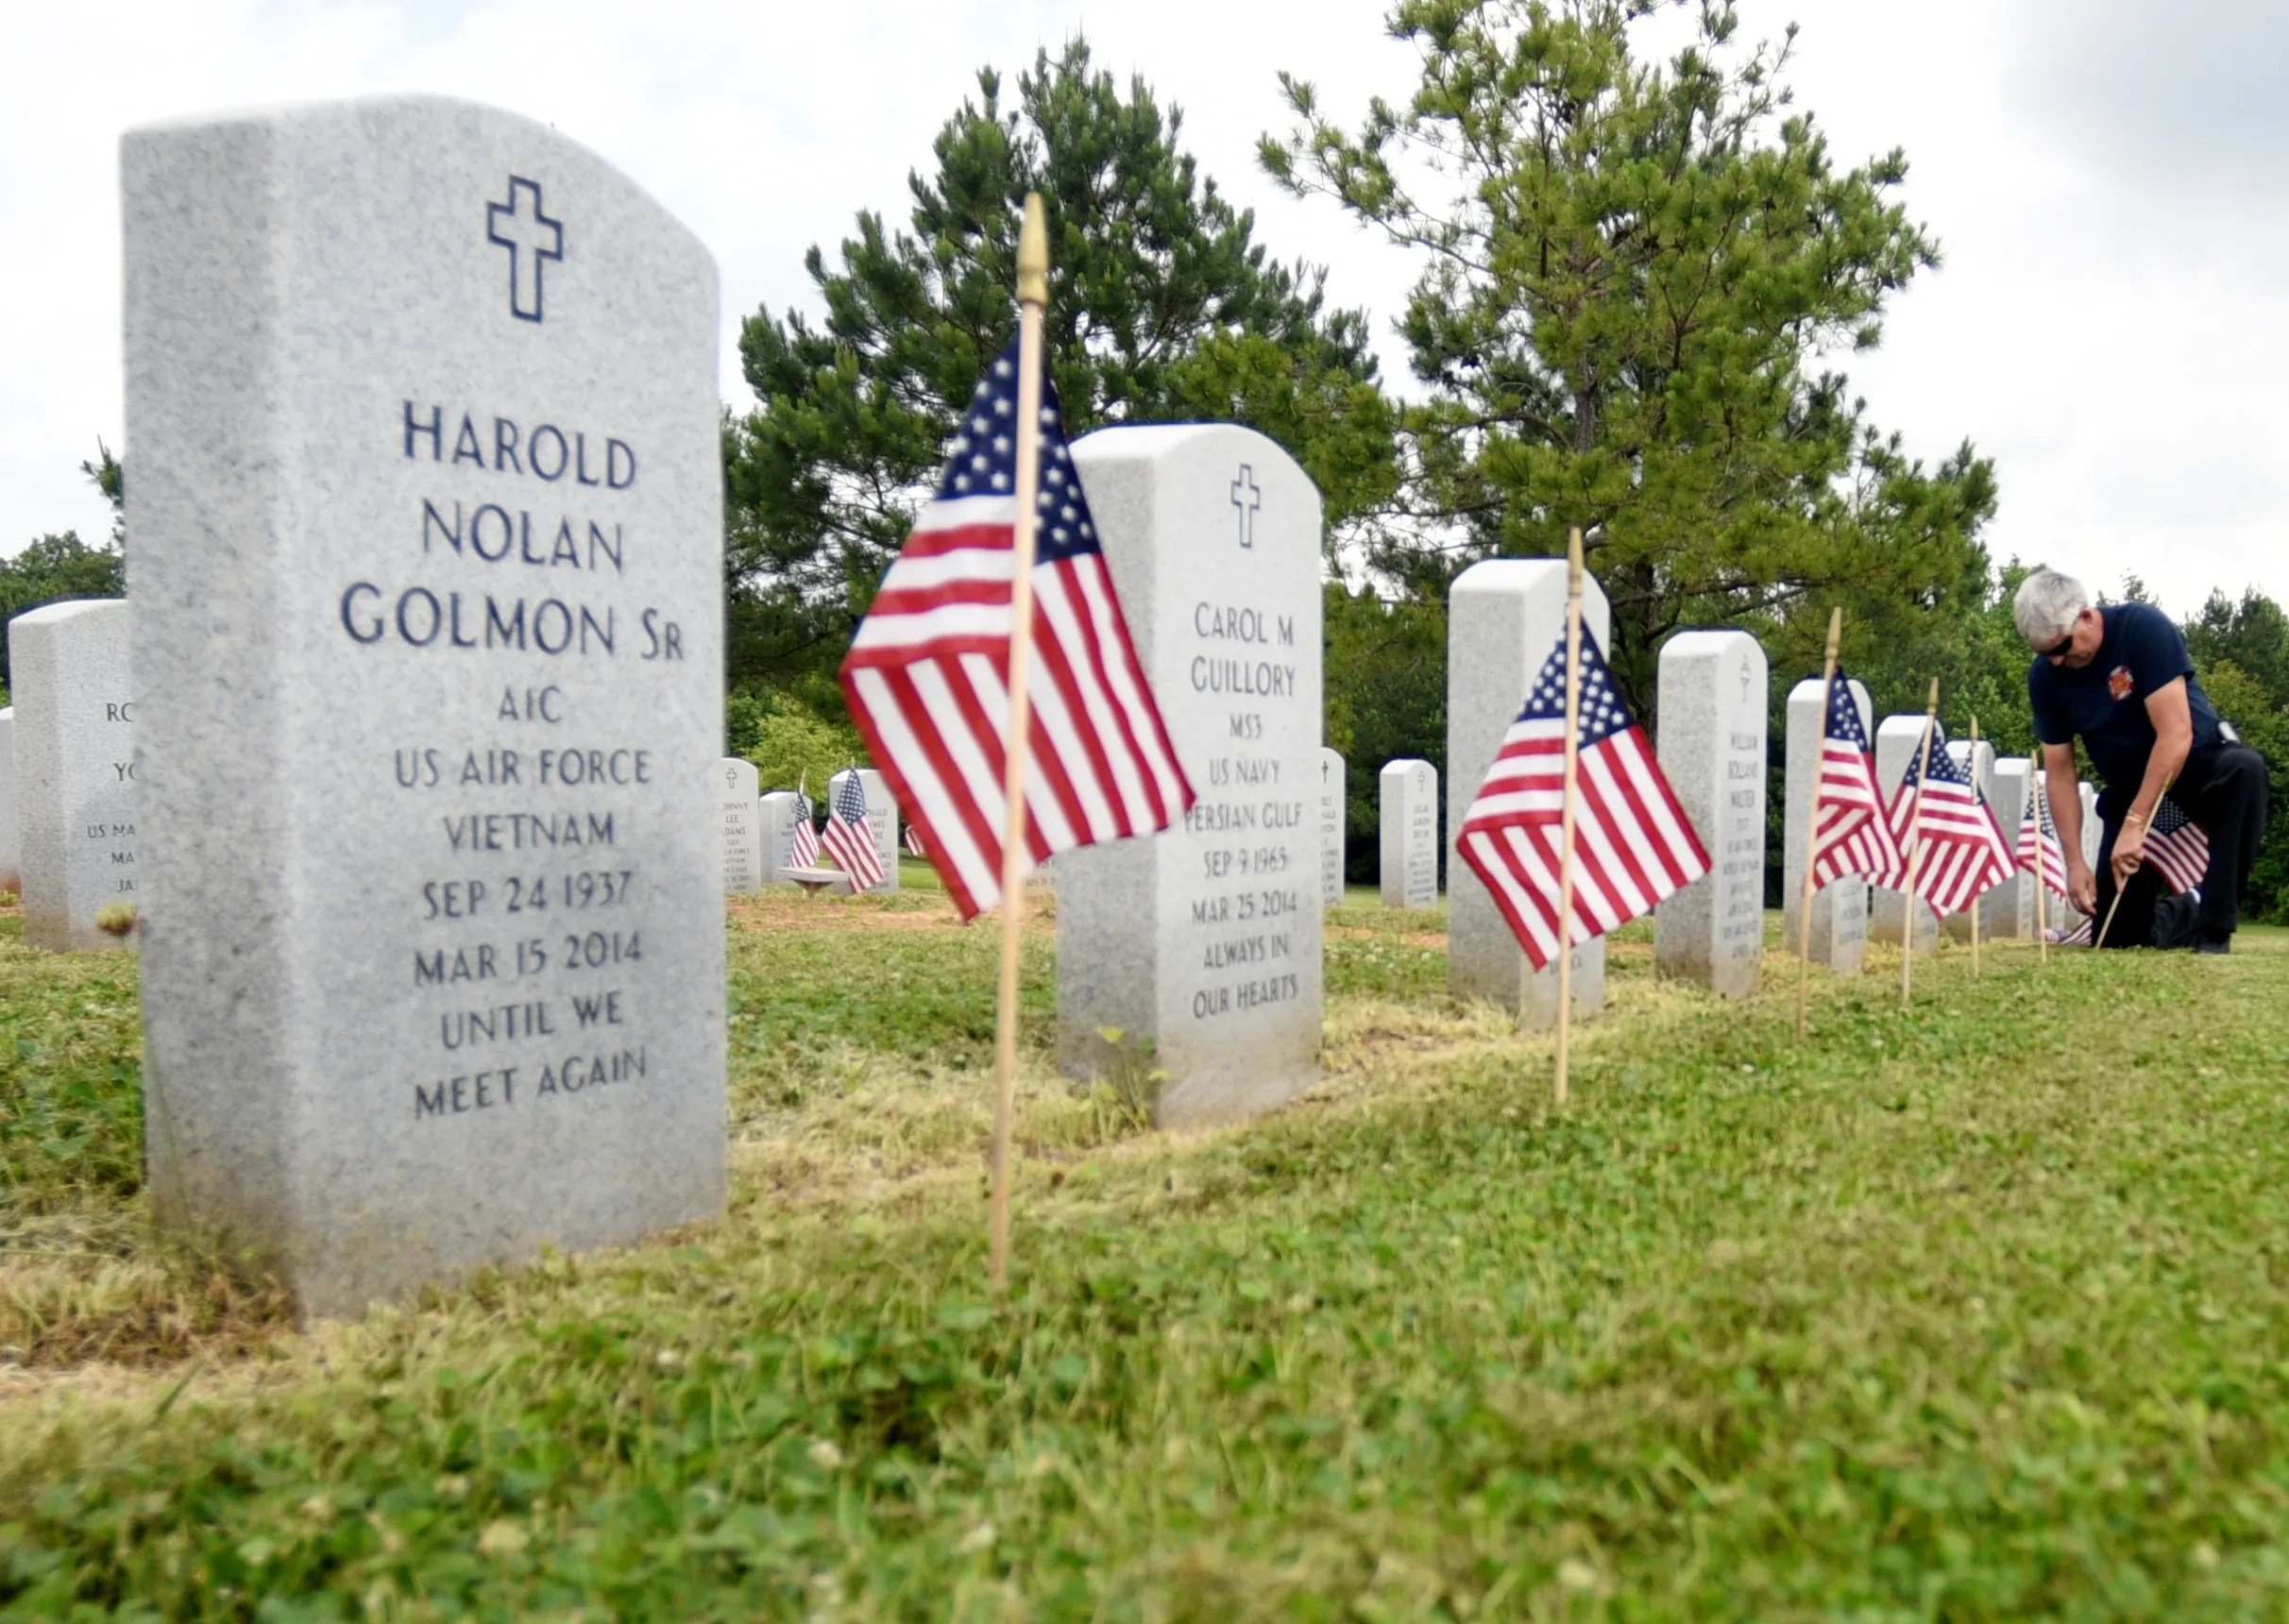 Letter Thank A Veteran For Their Service On Memorial Day